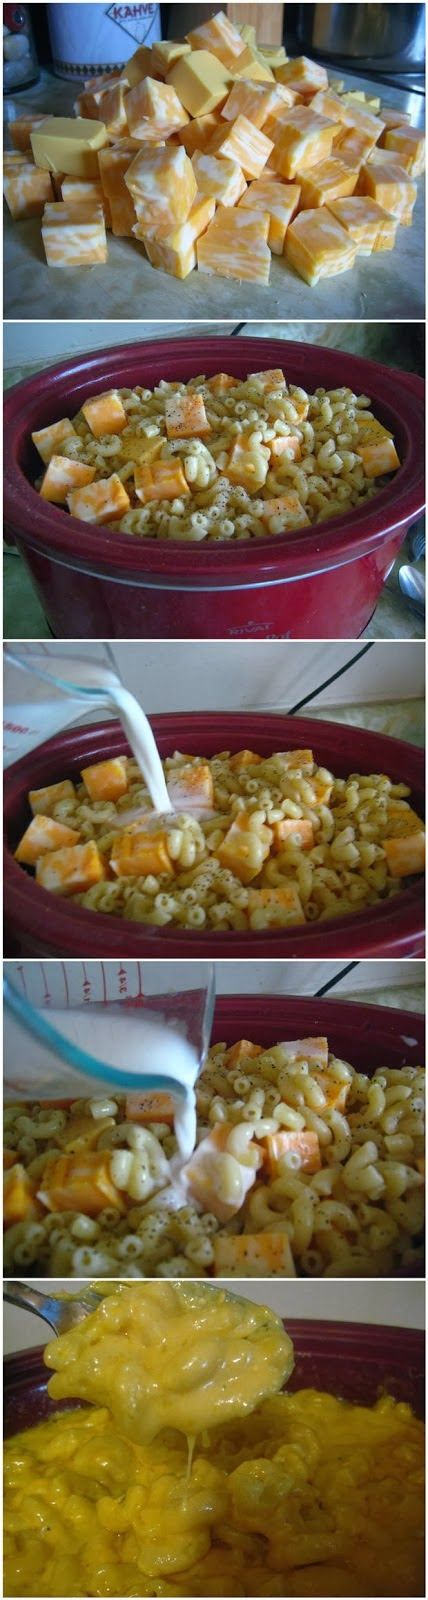 Crock Pot Mac and Cheese ~ Bestrecipedata..Ingredients: 16 ounces macaroni 16 ounces Monterey Jack cheese, cubed 16 ounces Colby cheese, cubed 16 ounces Velveeta (cubed) 1 stick of butter, cut into slices 16 ounces milk salt & pepper, to taste